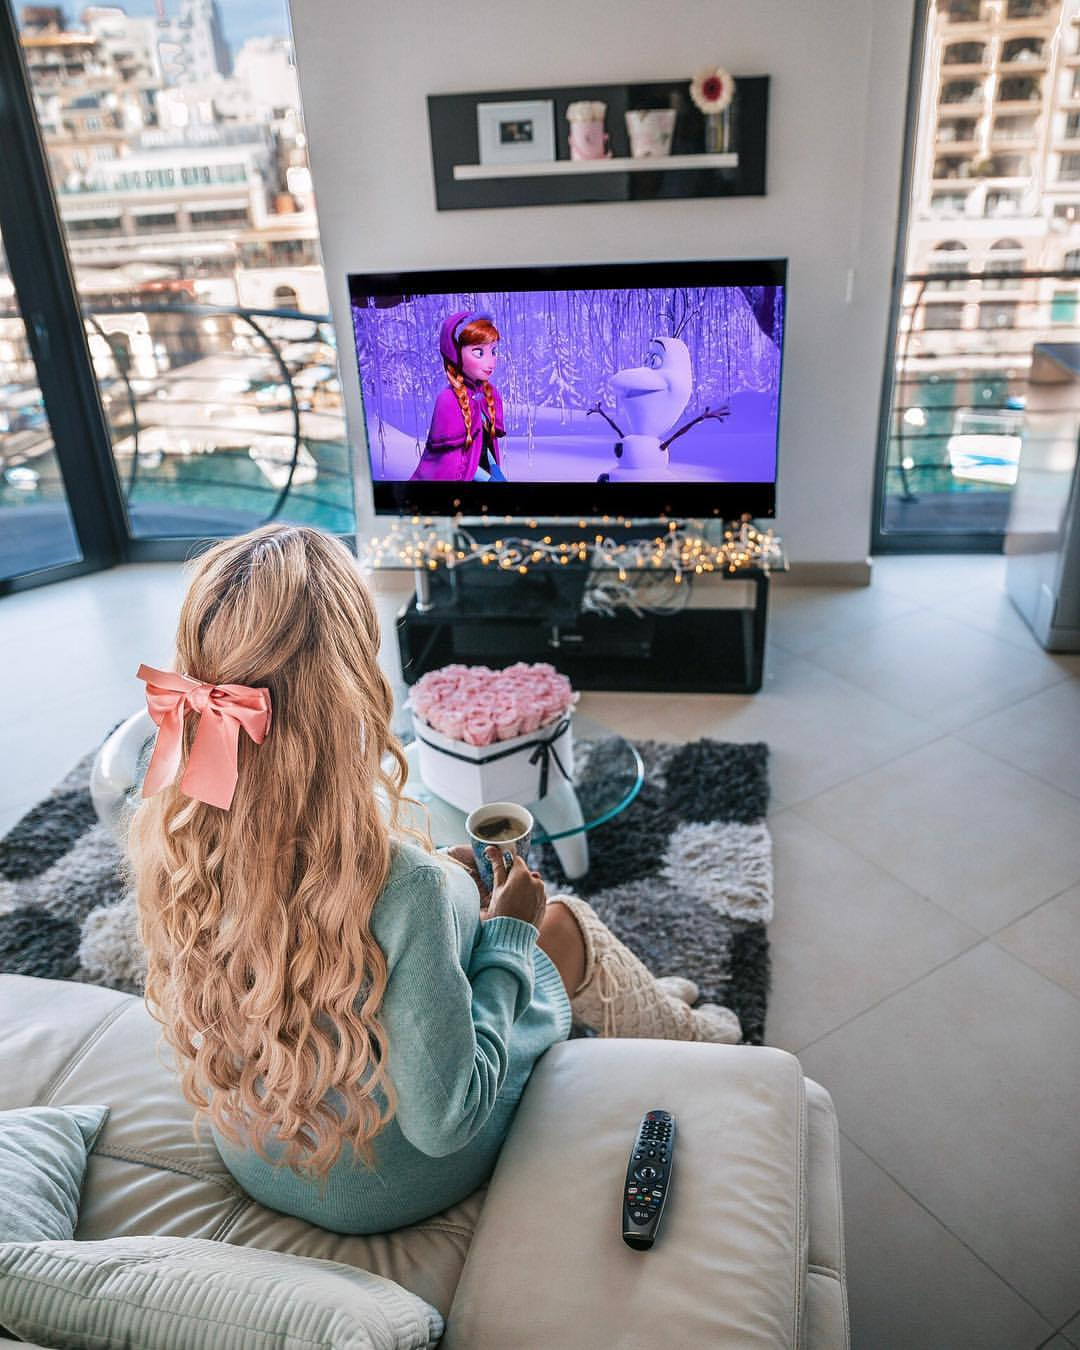 Girl with a bow in her hair watching animated movie in a modern living room